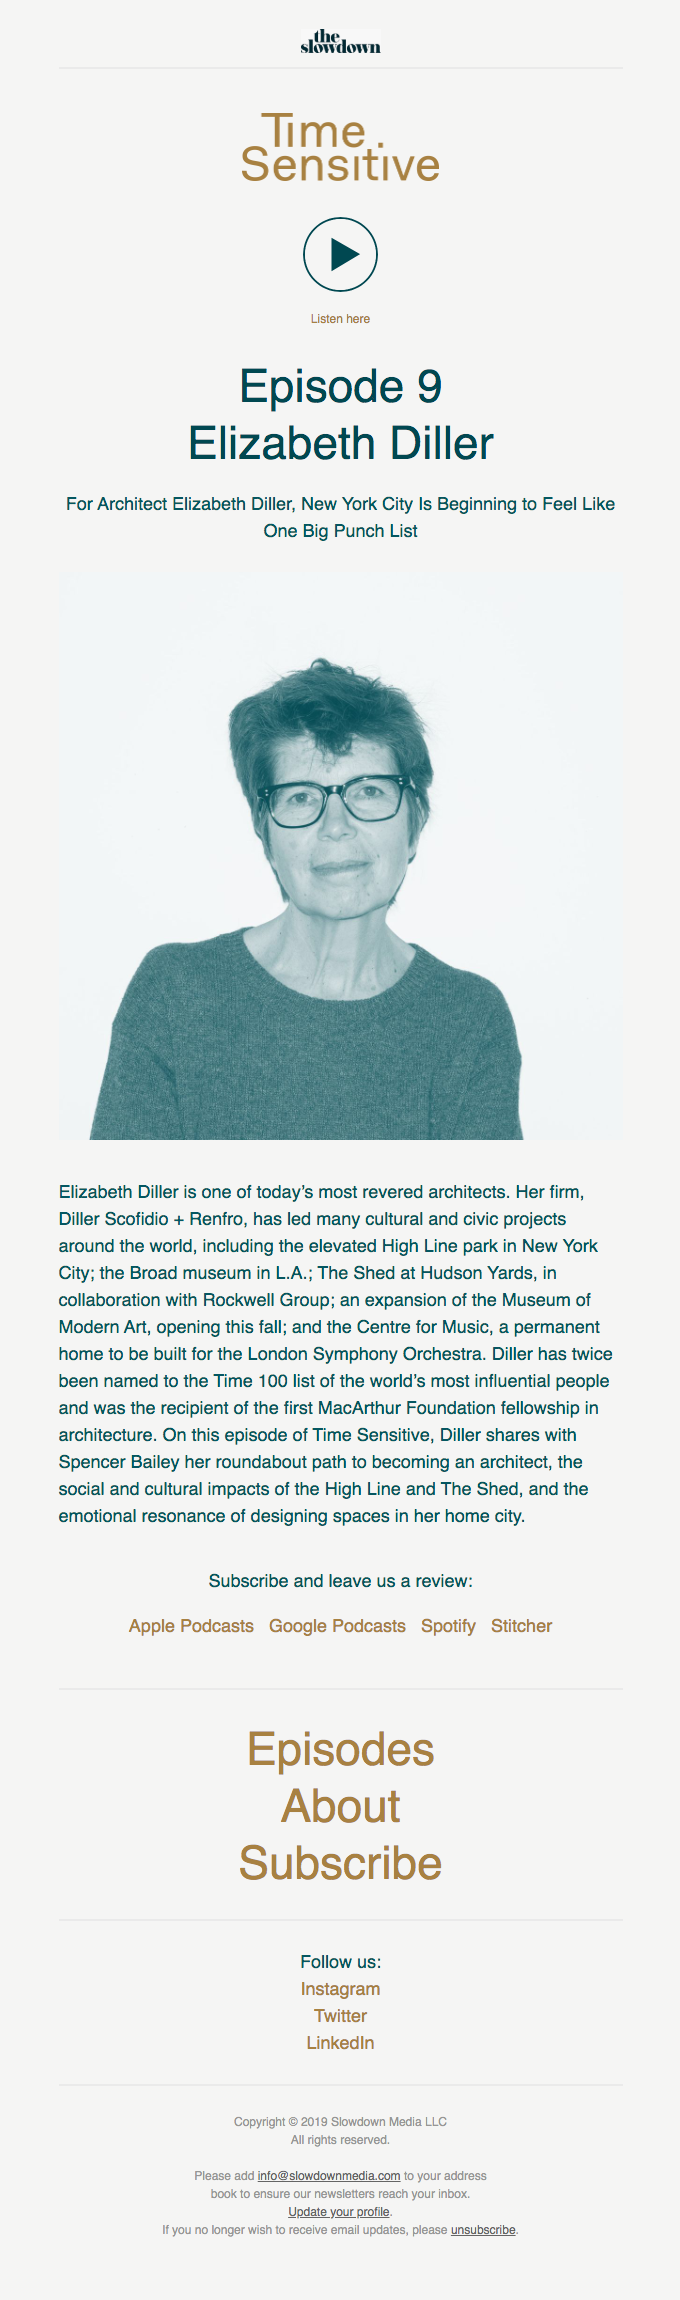 Time Sensitive Podcast Ep. 9: Elizabeth Diller